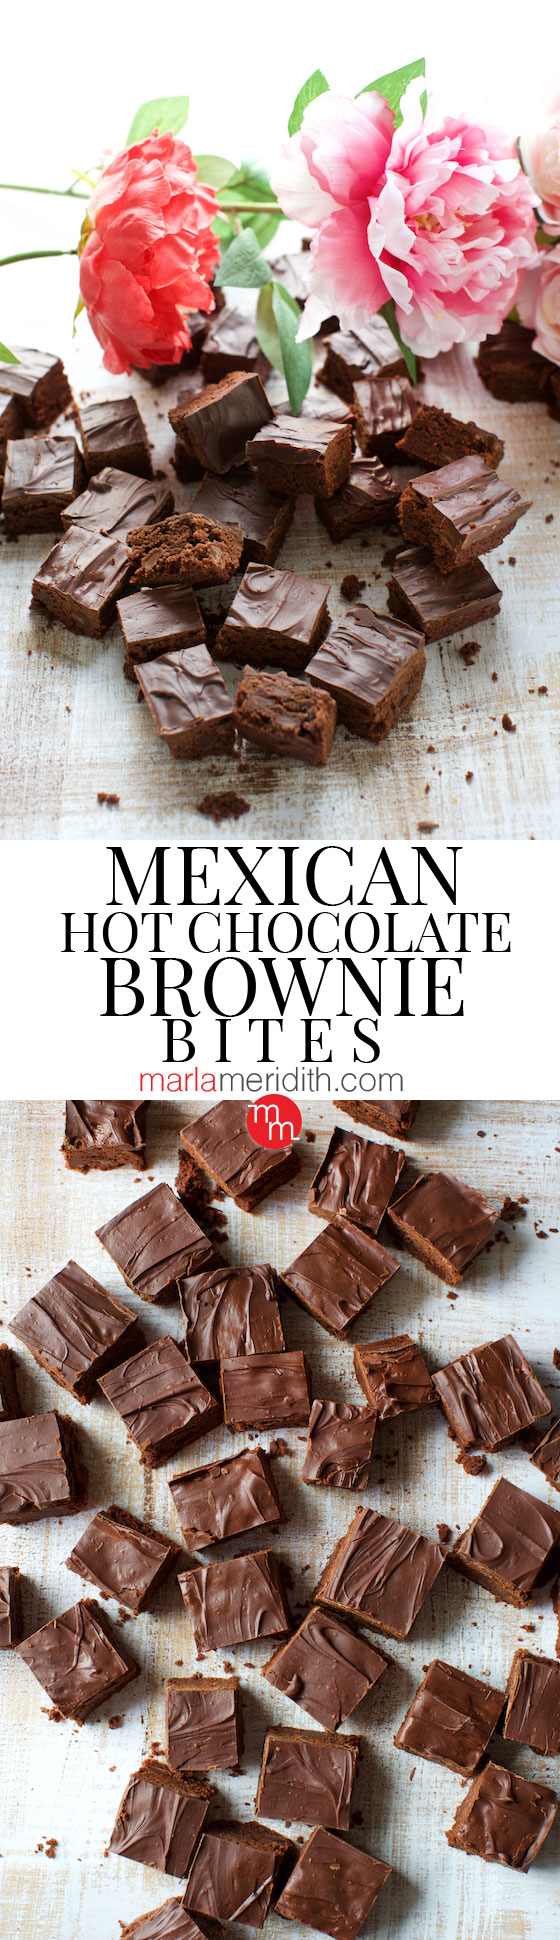 Mexican Hot Chocolate Brownie Bites recipe. Chocolate lovers beware! MarlaMeridith.com ( @marlameridith )